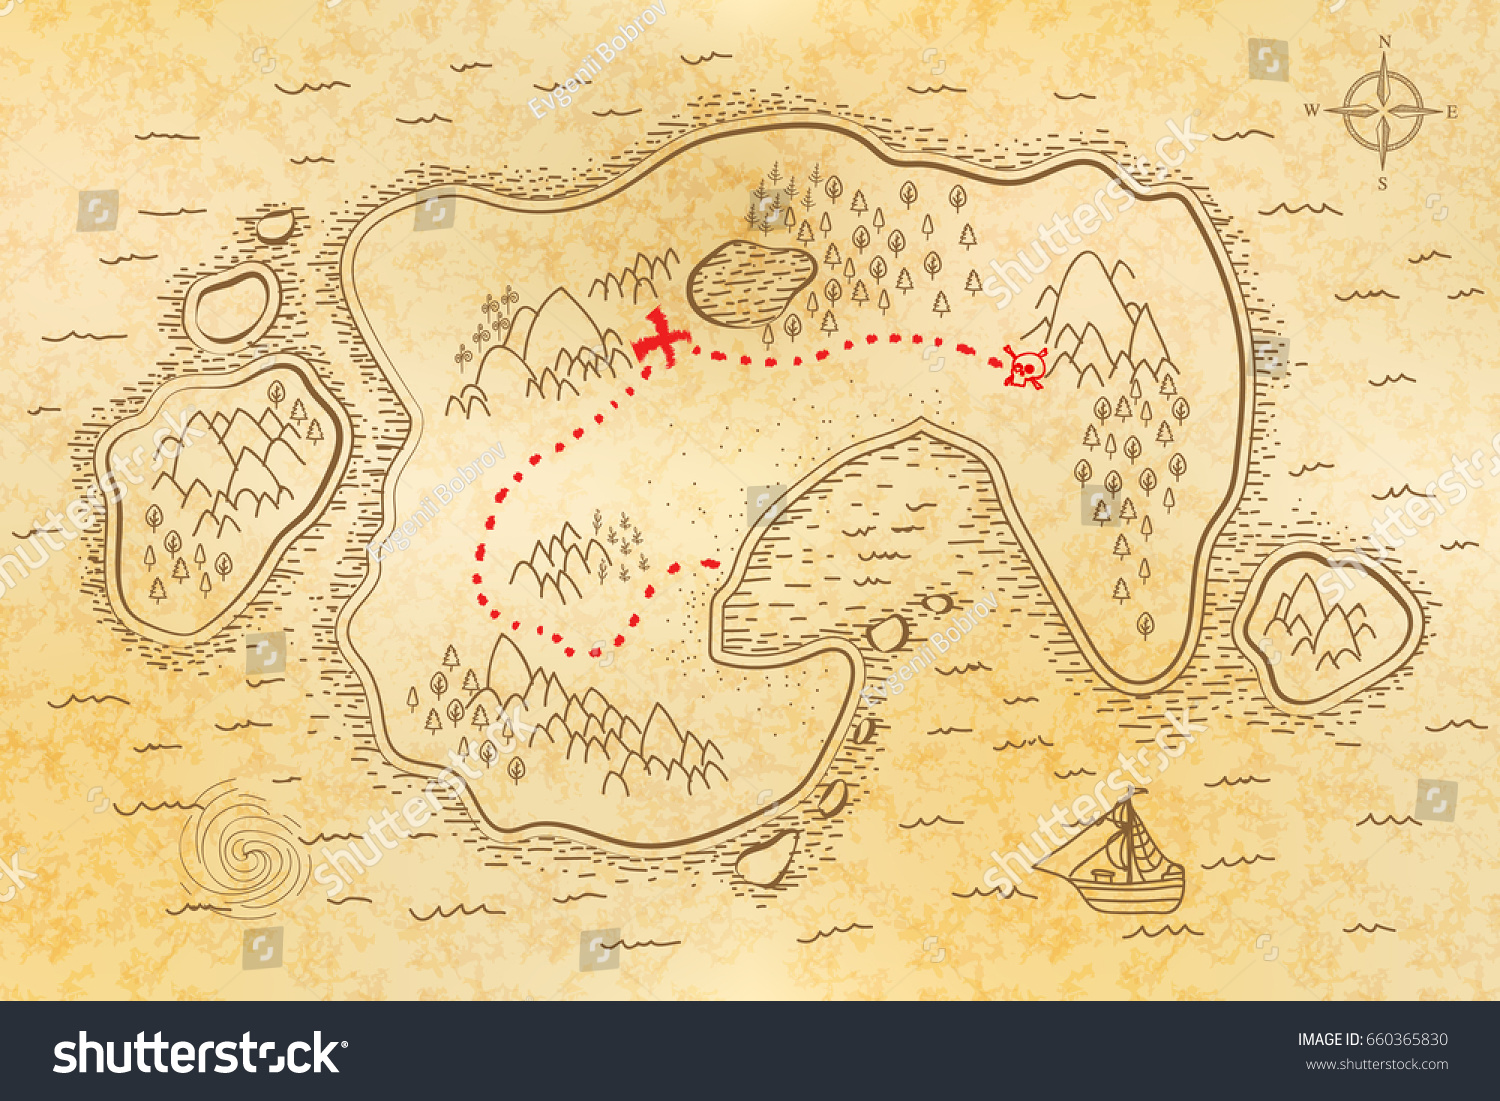 ancient pirate map on old textured stock vector 660365830